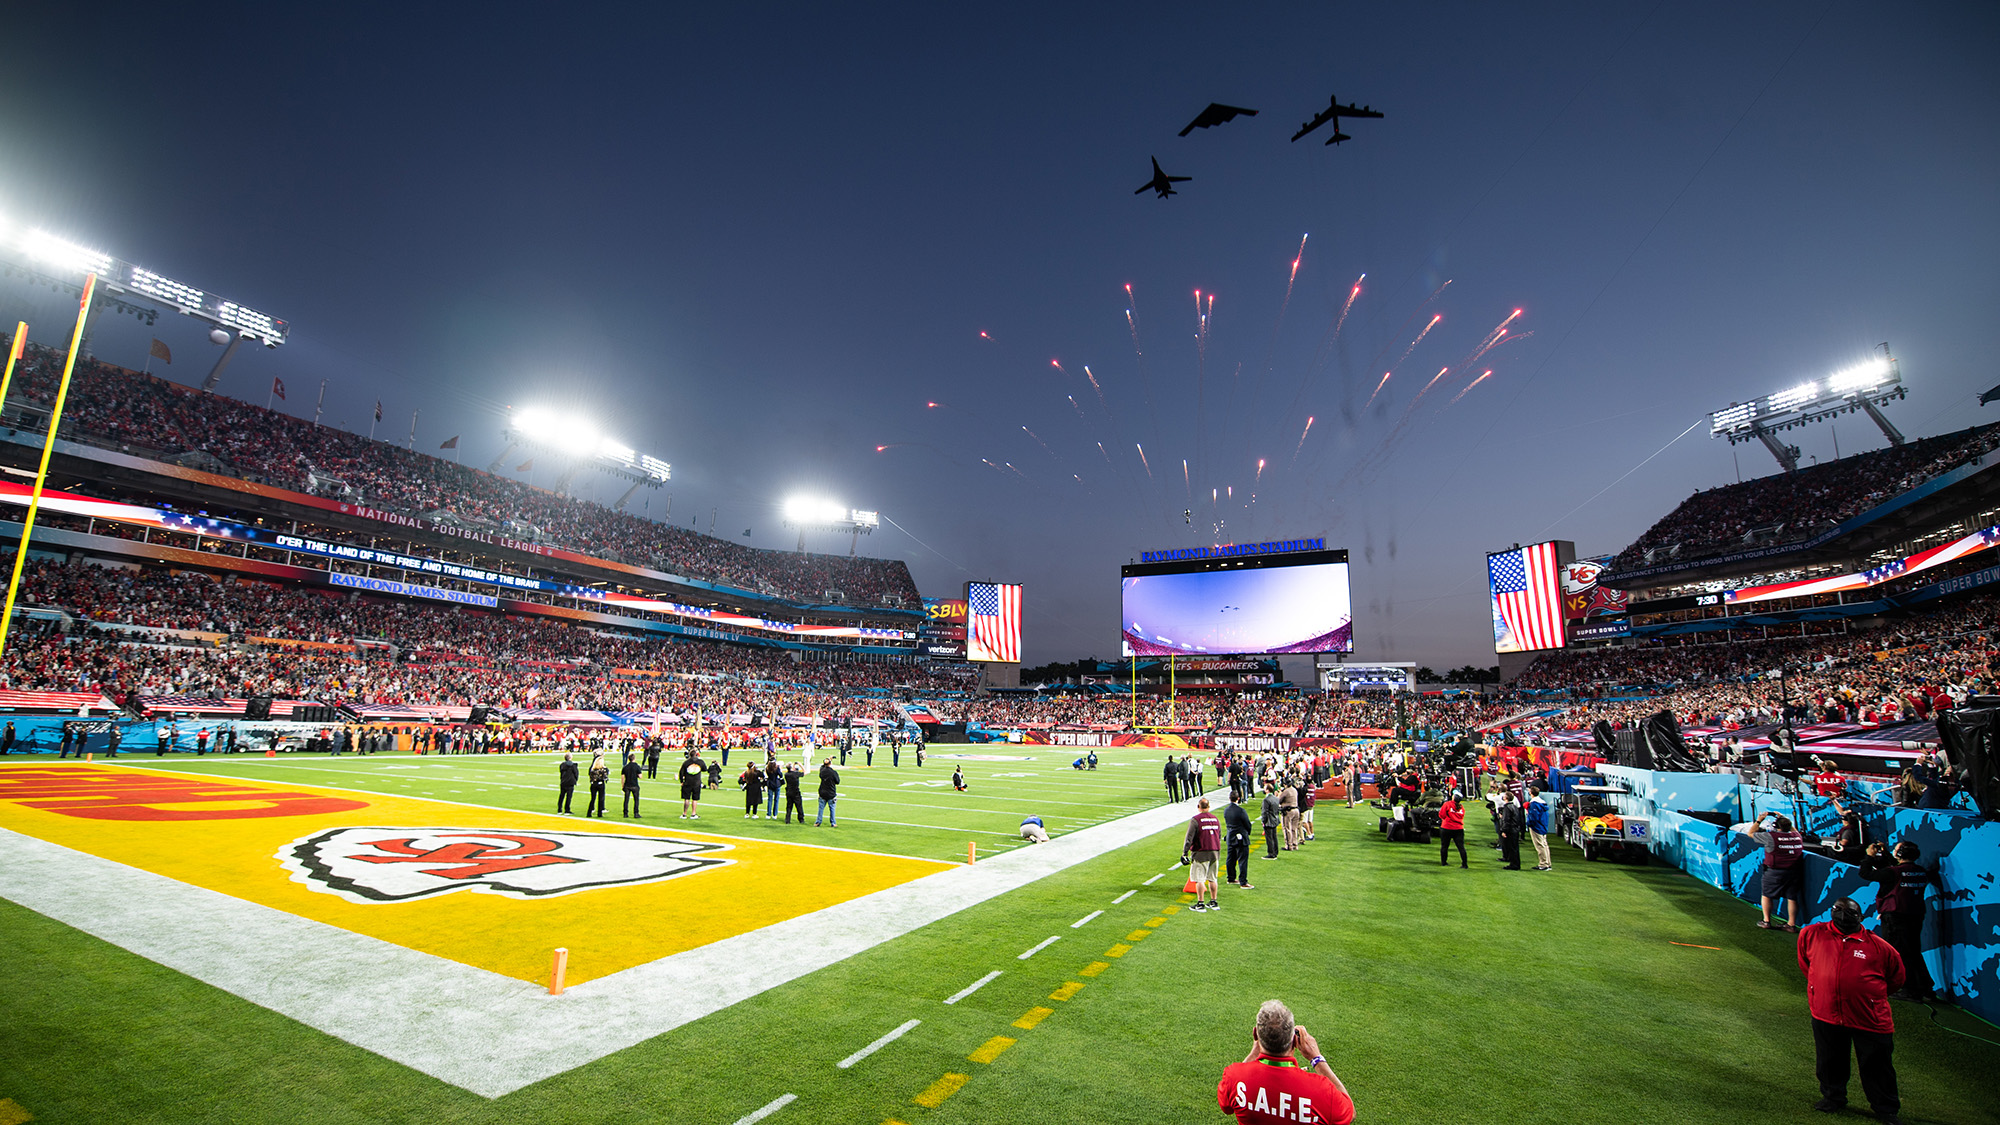 Air Force Global Strike Command bombers perform the Super Bowl LV flyover at Raymond James Stadium in Tampa, Fla., Jan. 7, 2021. The trifecta was the first of its kind as it included a B-1B Lancer from Ellsworth Air Force Base, S.D., a B-2 Spirit from Whiteman AFB, Mo., and a B-52H Stratofortress from Minot AFB, N.D. (Airman 1st Class Jacob B. Wrightsman/Air Force)